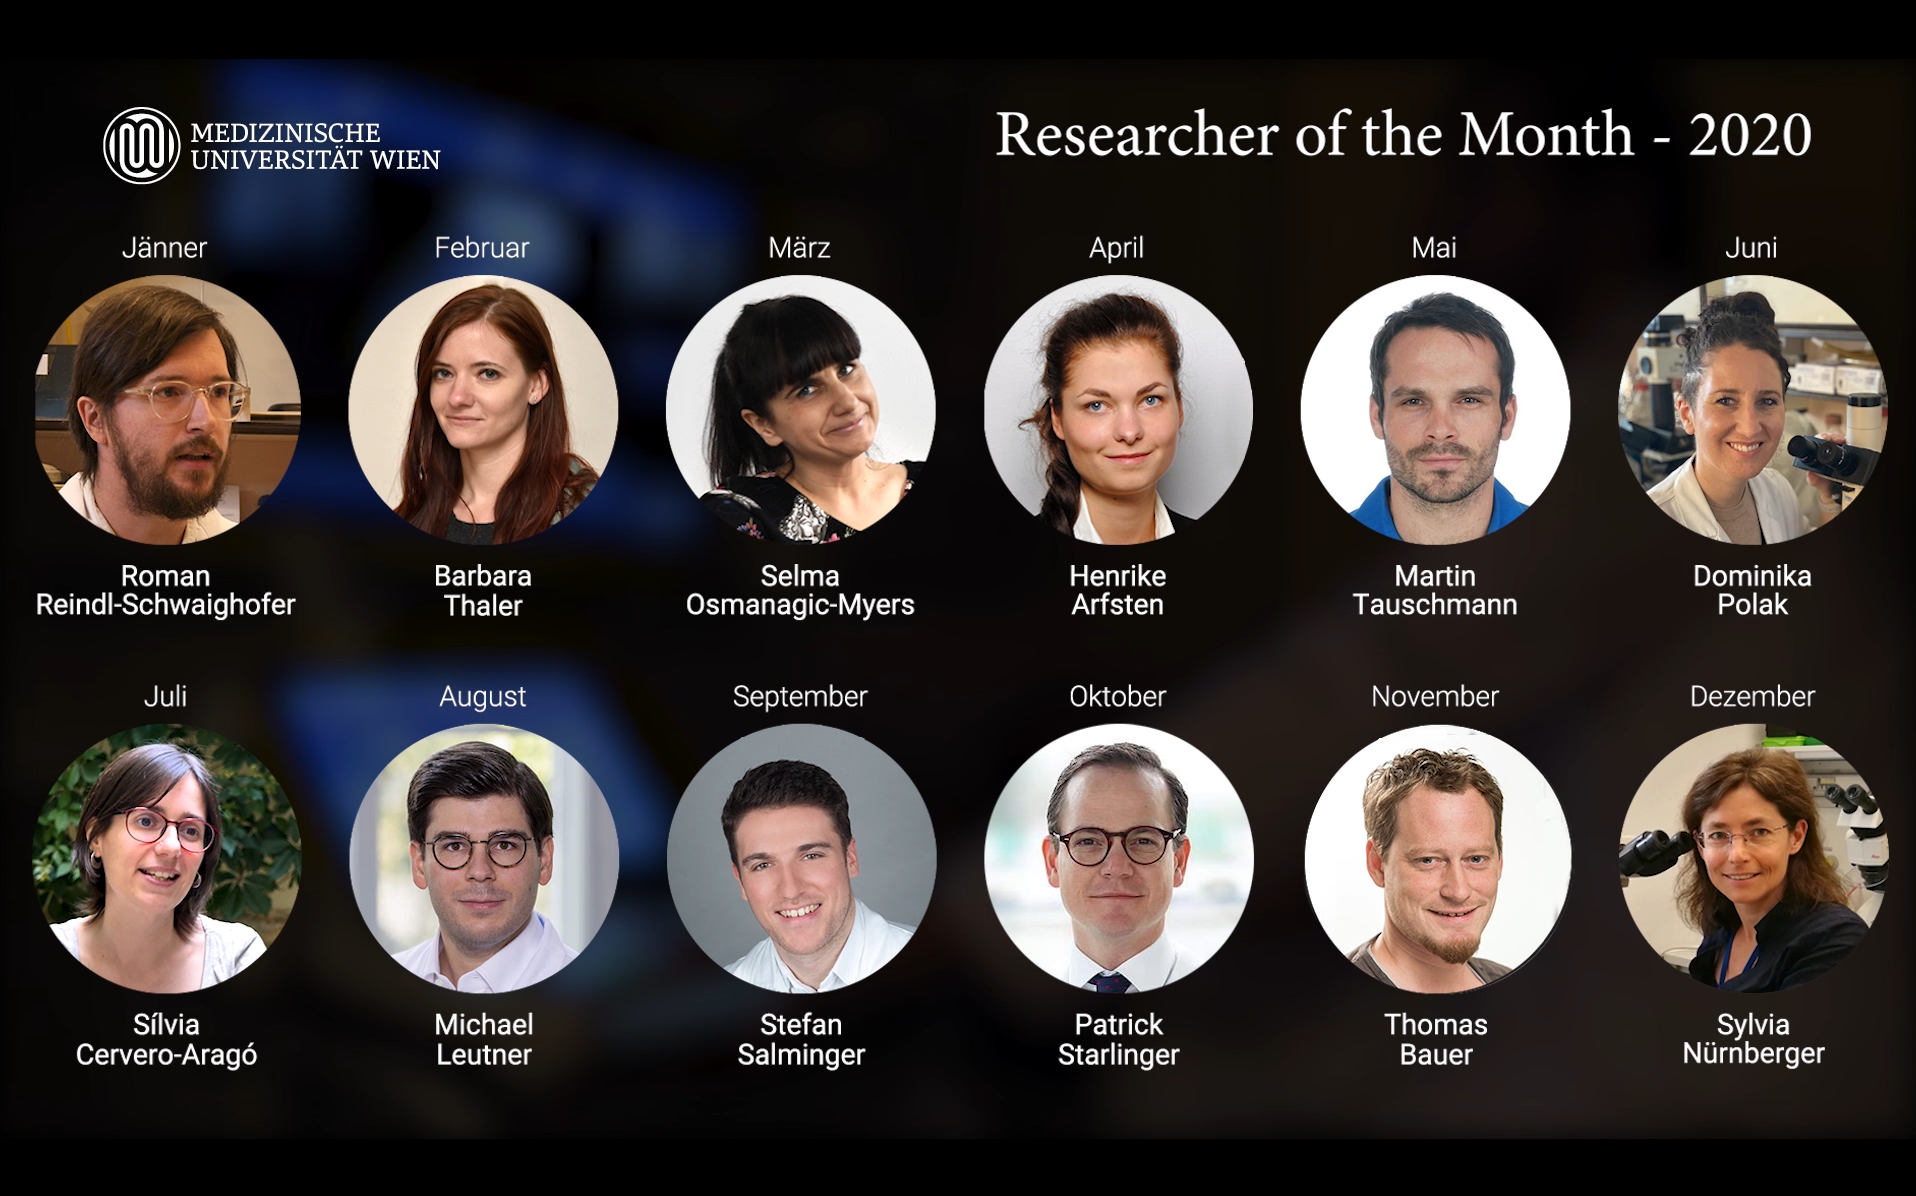 Researcher of the Month 2020